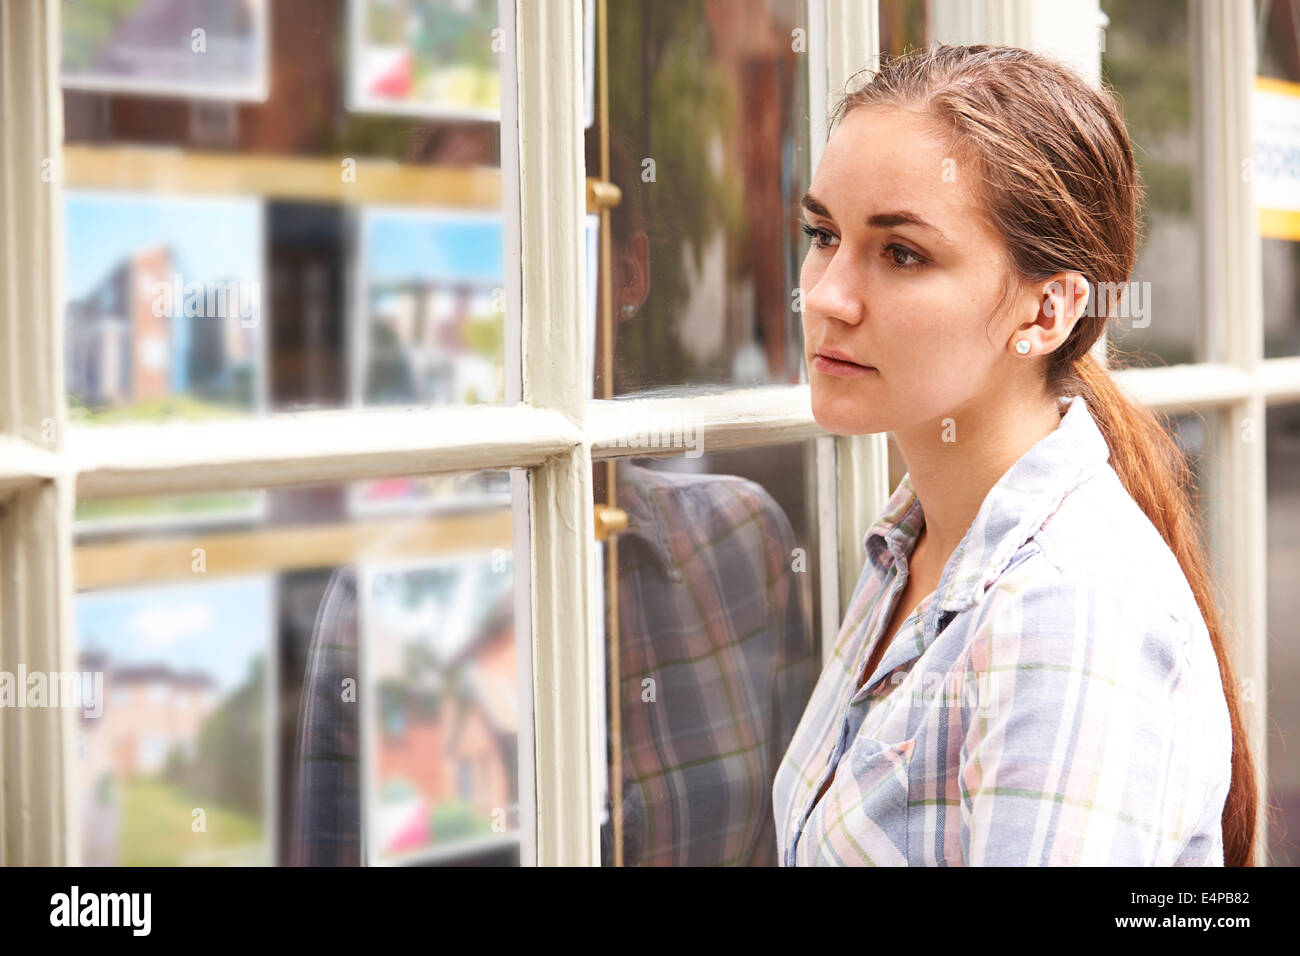 Disappointed Young Woman Looking In Window Of Estate Agents - Stock Image